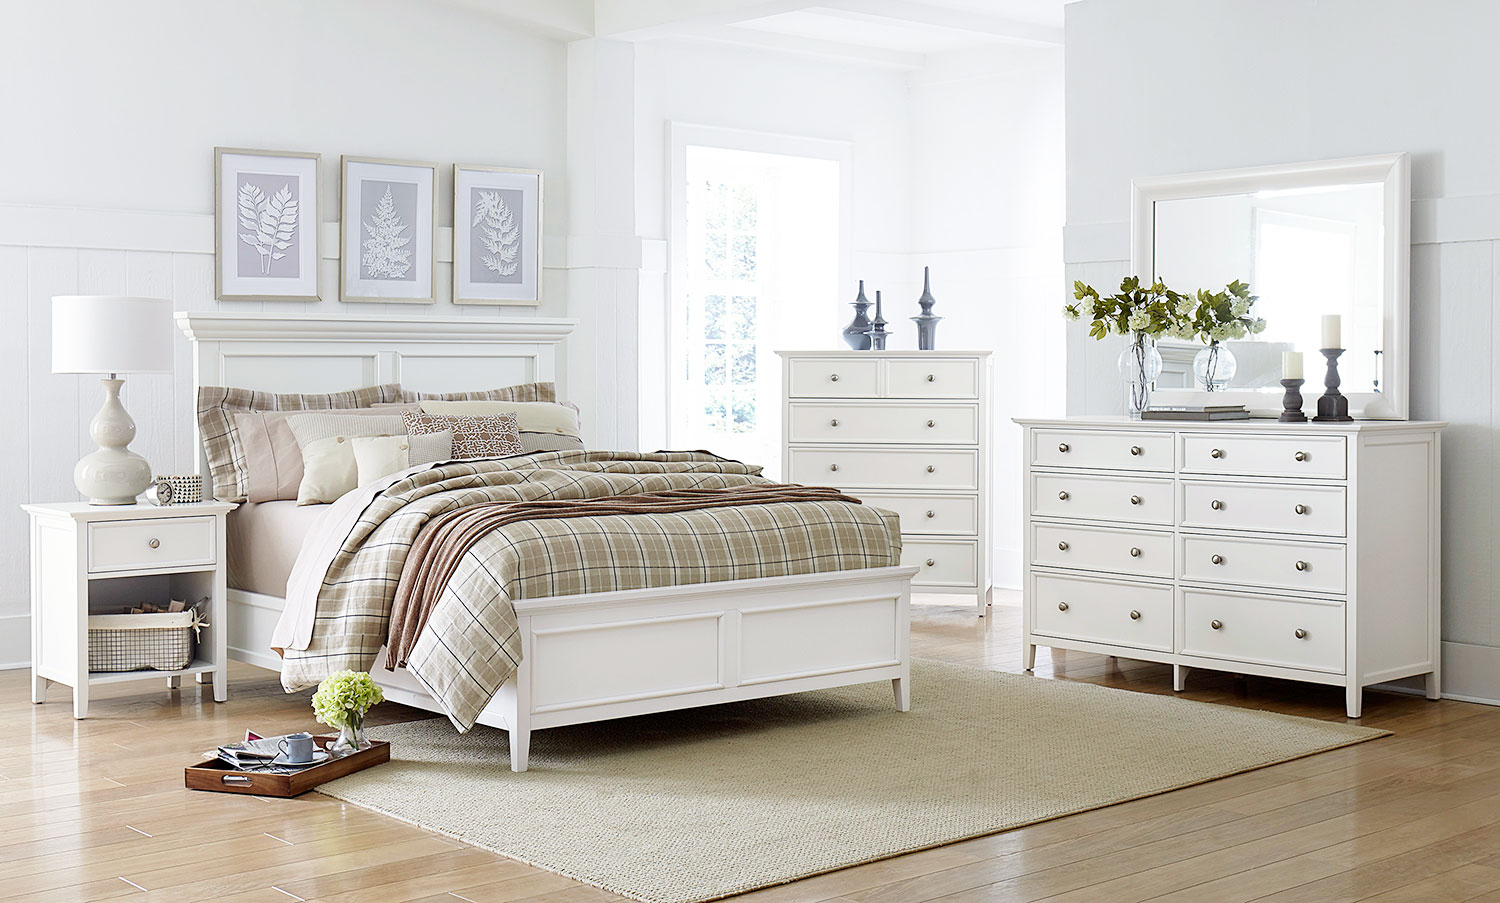 Levin Bedroom Furniture Search Results Levin Levin Furniture